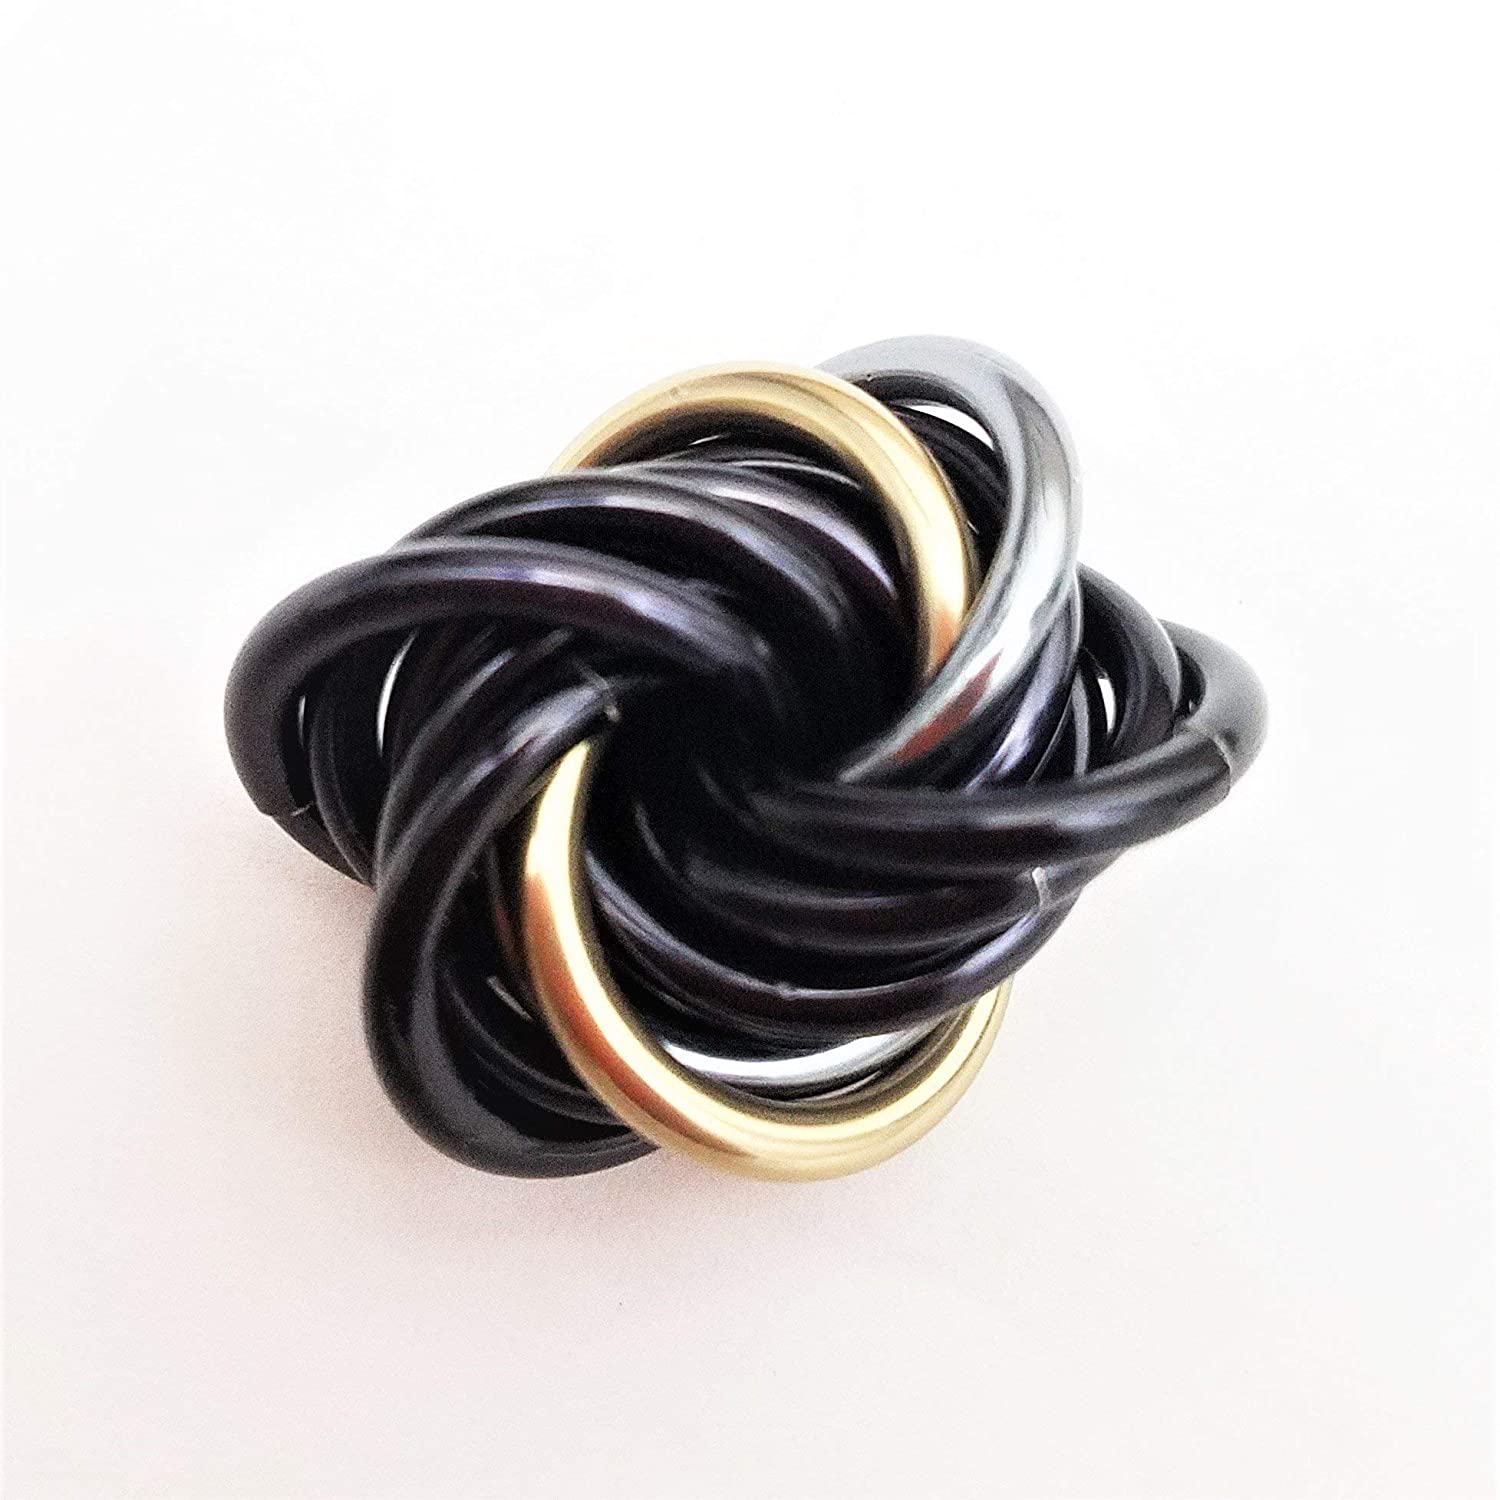 B074YZJK3T Mobii Eclipse: Small Mobius Fidget Stress Ball, Onyx with Champagne and Mercury Silver, Restless Hands, Office Toy 81elRwziT2BL